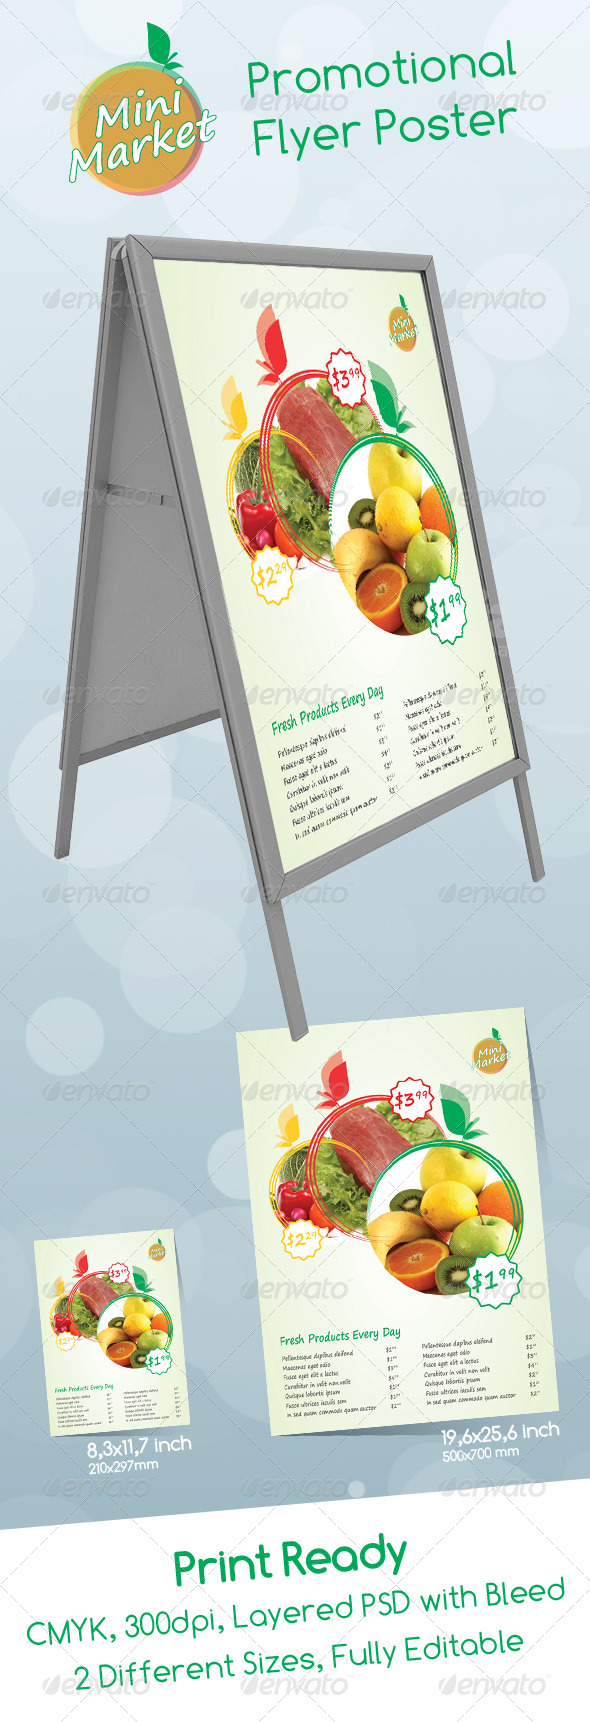 Mini Market Promotional Poster And Flyer - Clubs & Parties Events